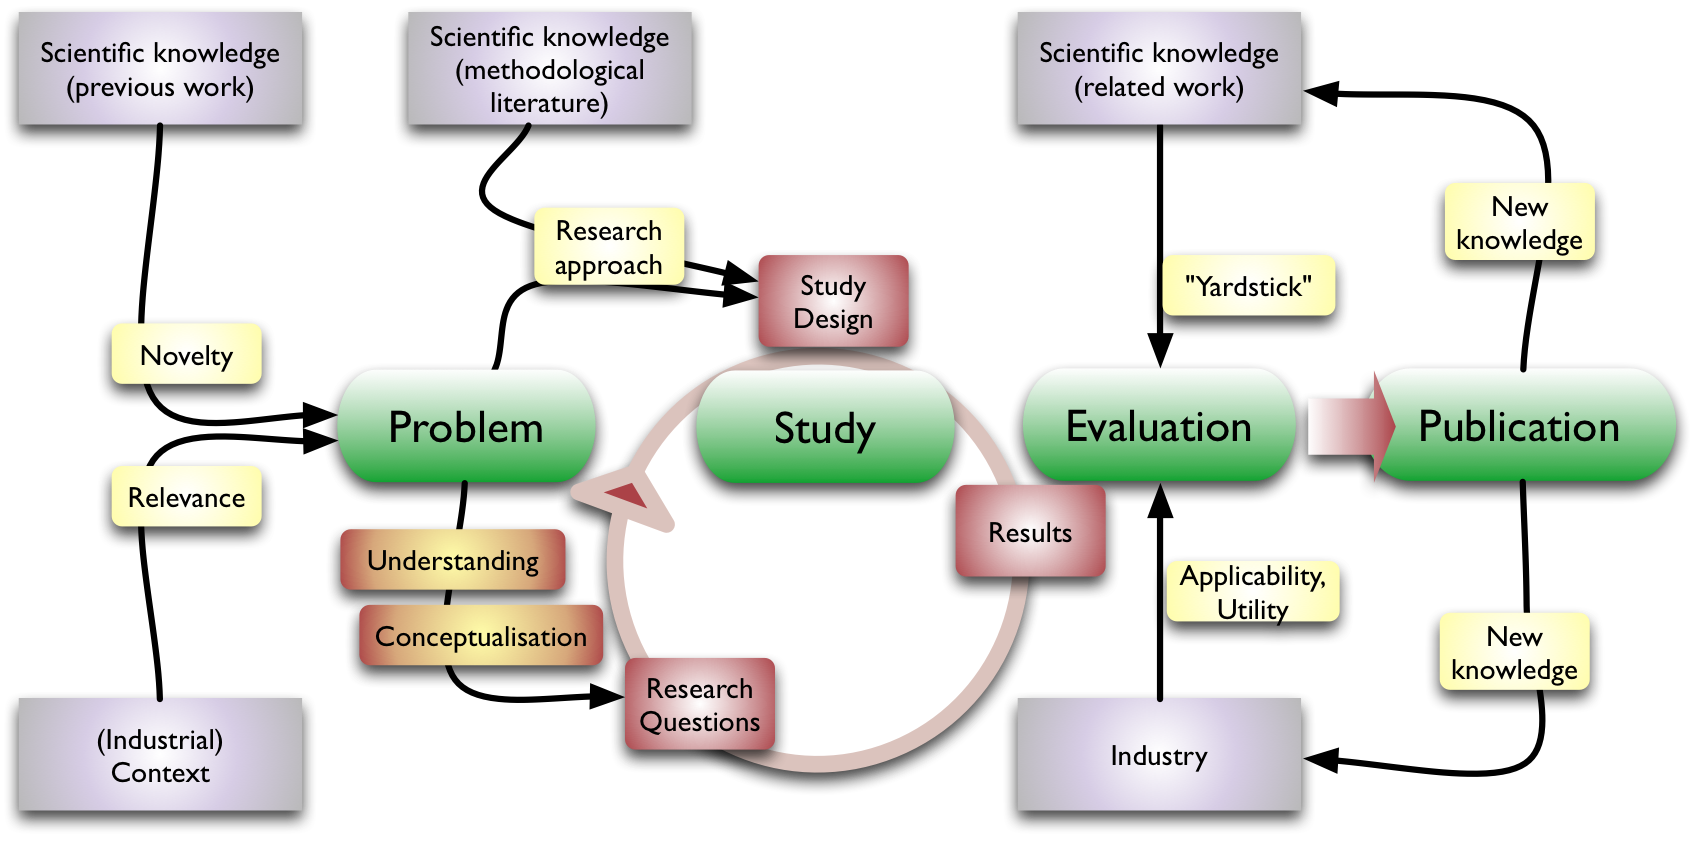 Dissertation Methodology Research Design bdaafefafefbf